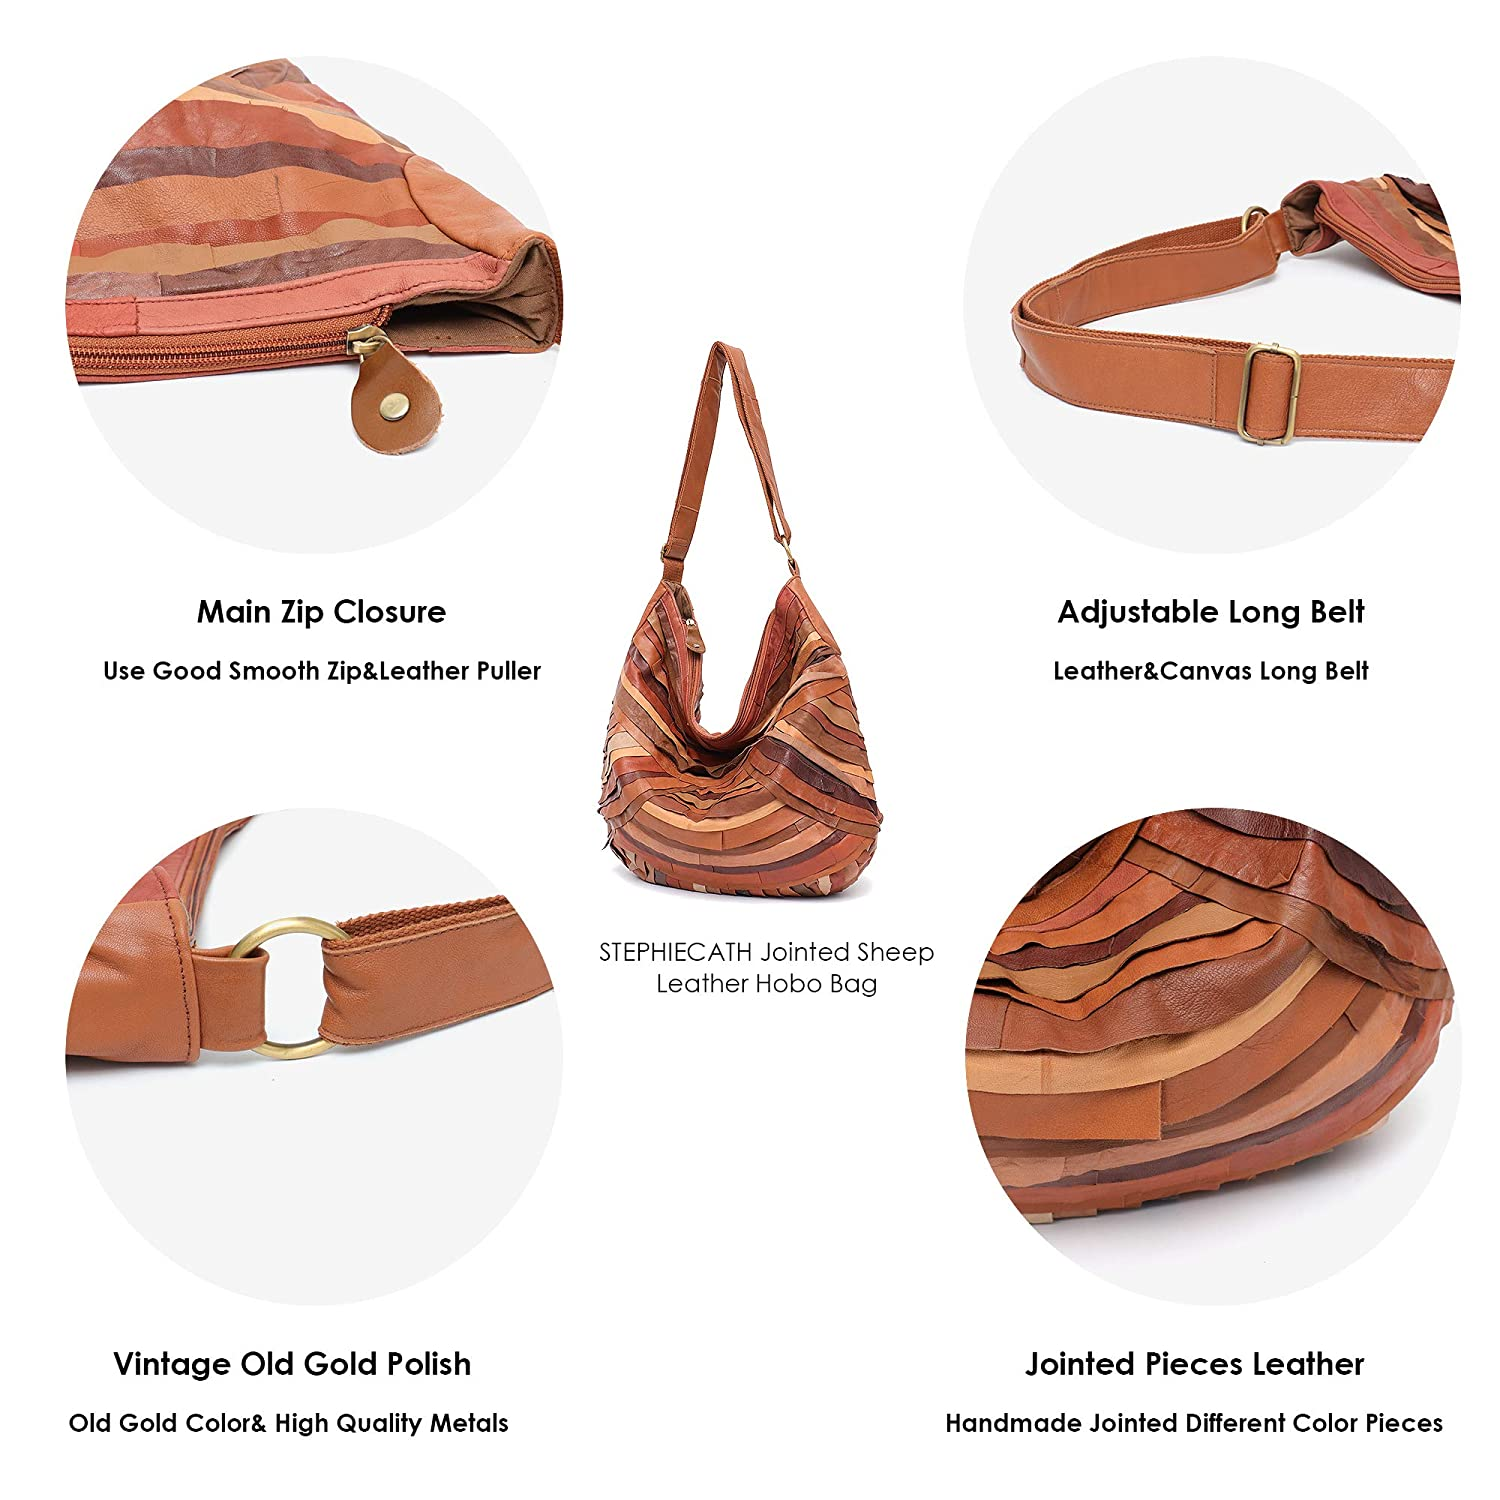 07f0dcfa8fd1 Amazon.com  Vintage Leather Women Patchwork Hobo Bag STEPHIECATH Soft  Casual Real Lamb Leather Sheep Skin Messenger Bag (TAN)  Musical Instruments